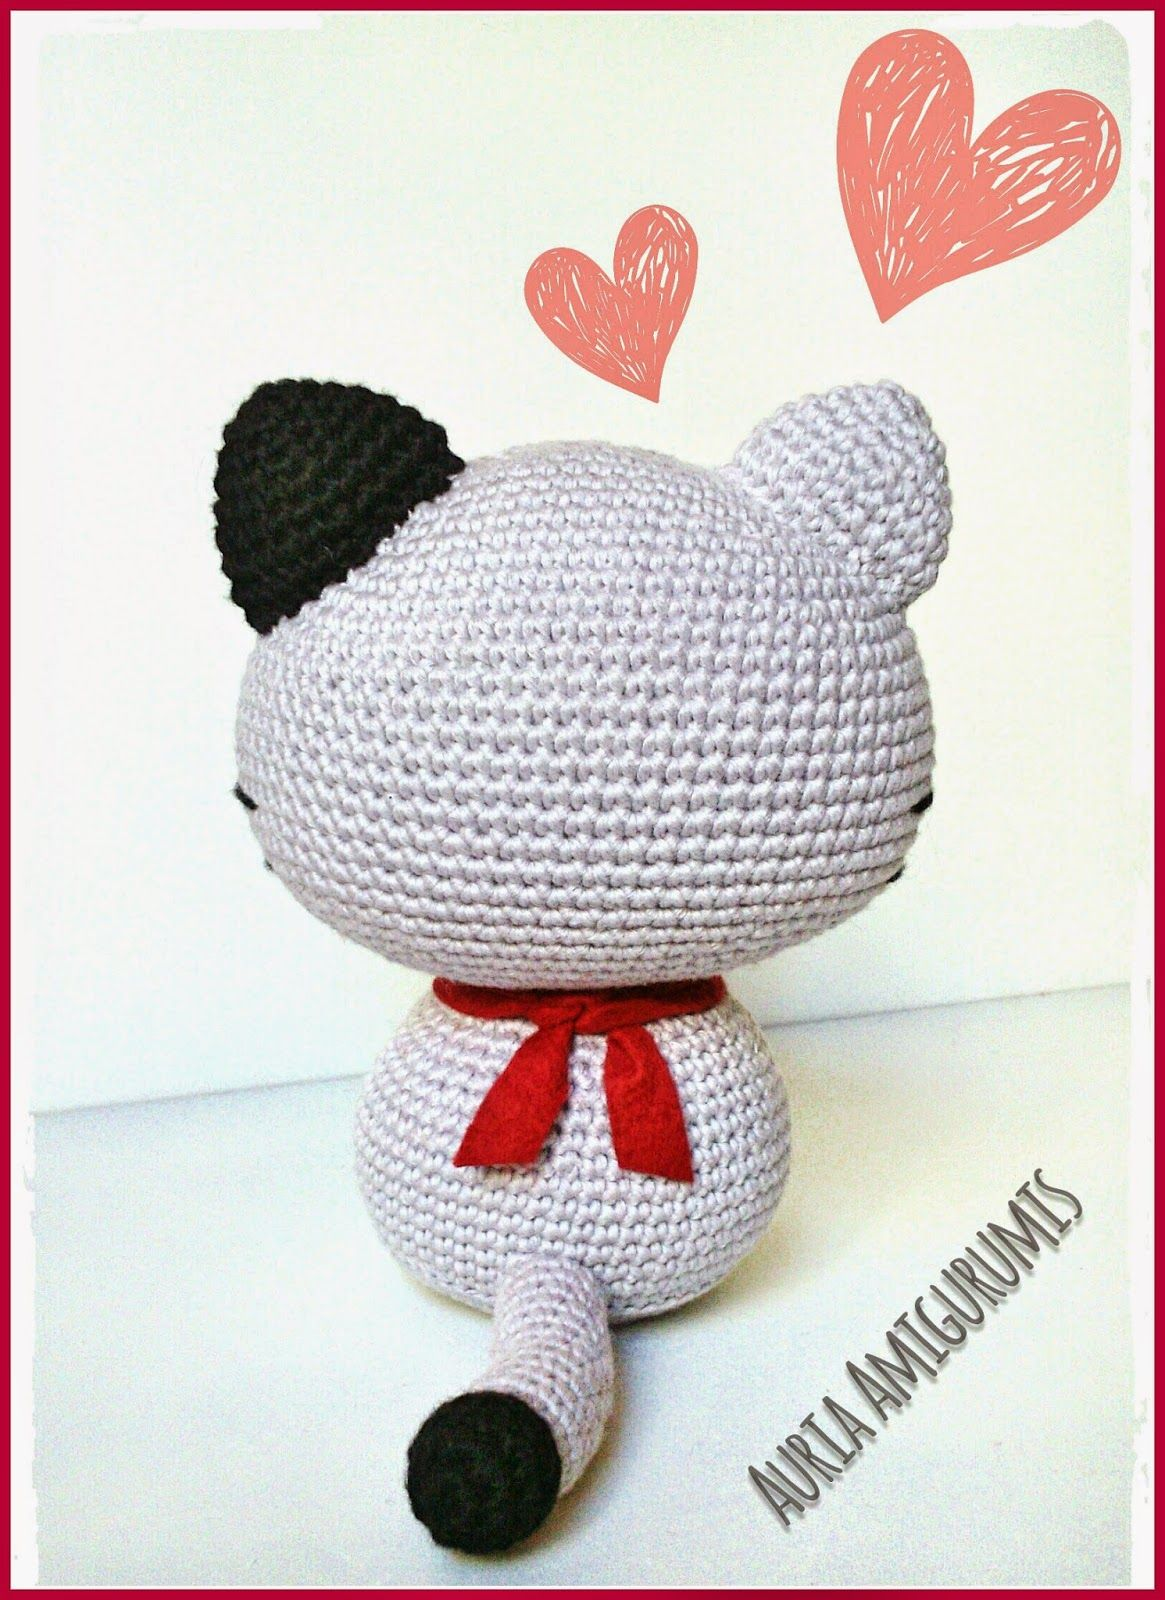 Gato amigurumi | Crochet | Pinterest | Gatos, Amigurumi and Crochet